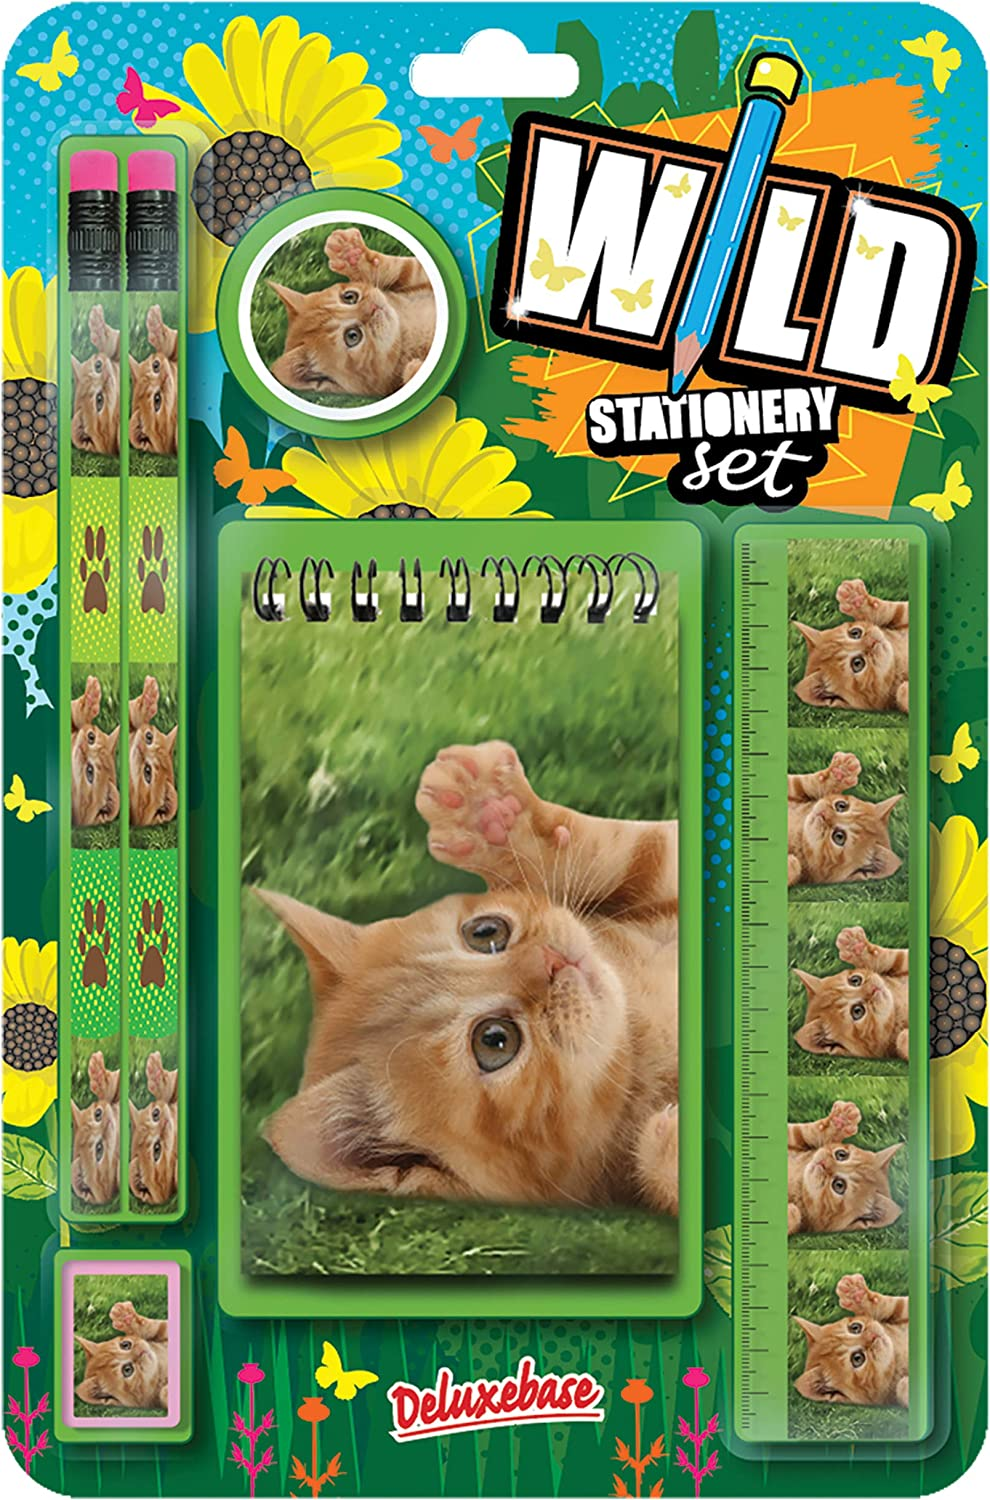 2021 model Wild Stationery Set - Kitten These Deluxebase. Special sale item Cute Station from